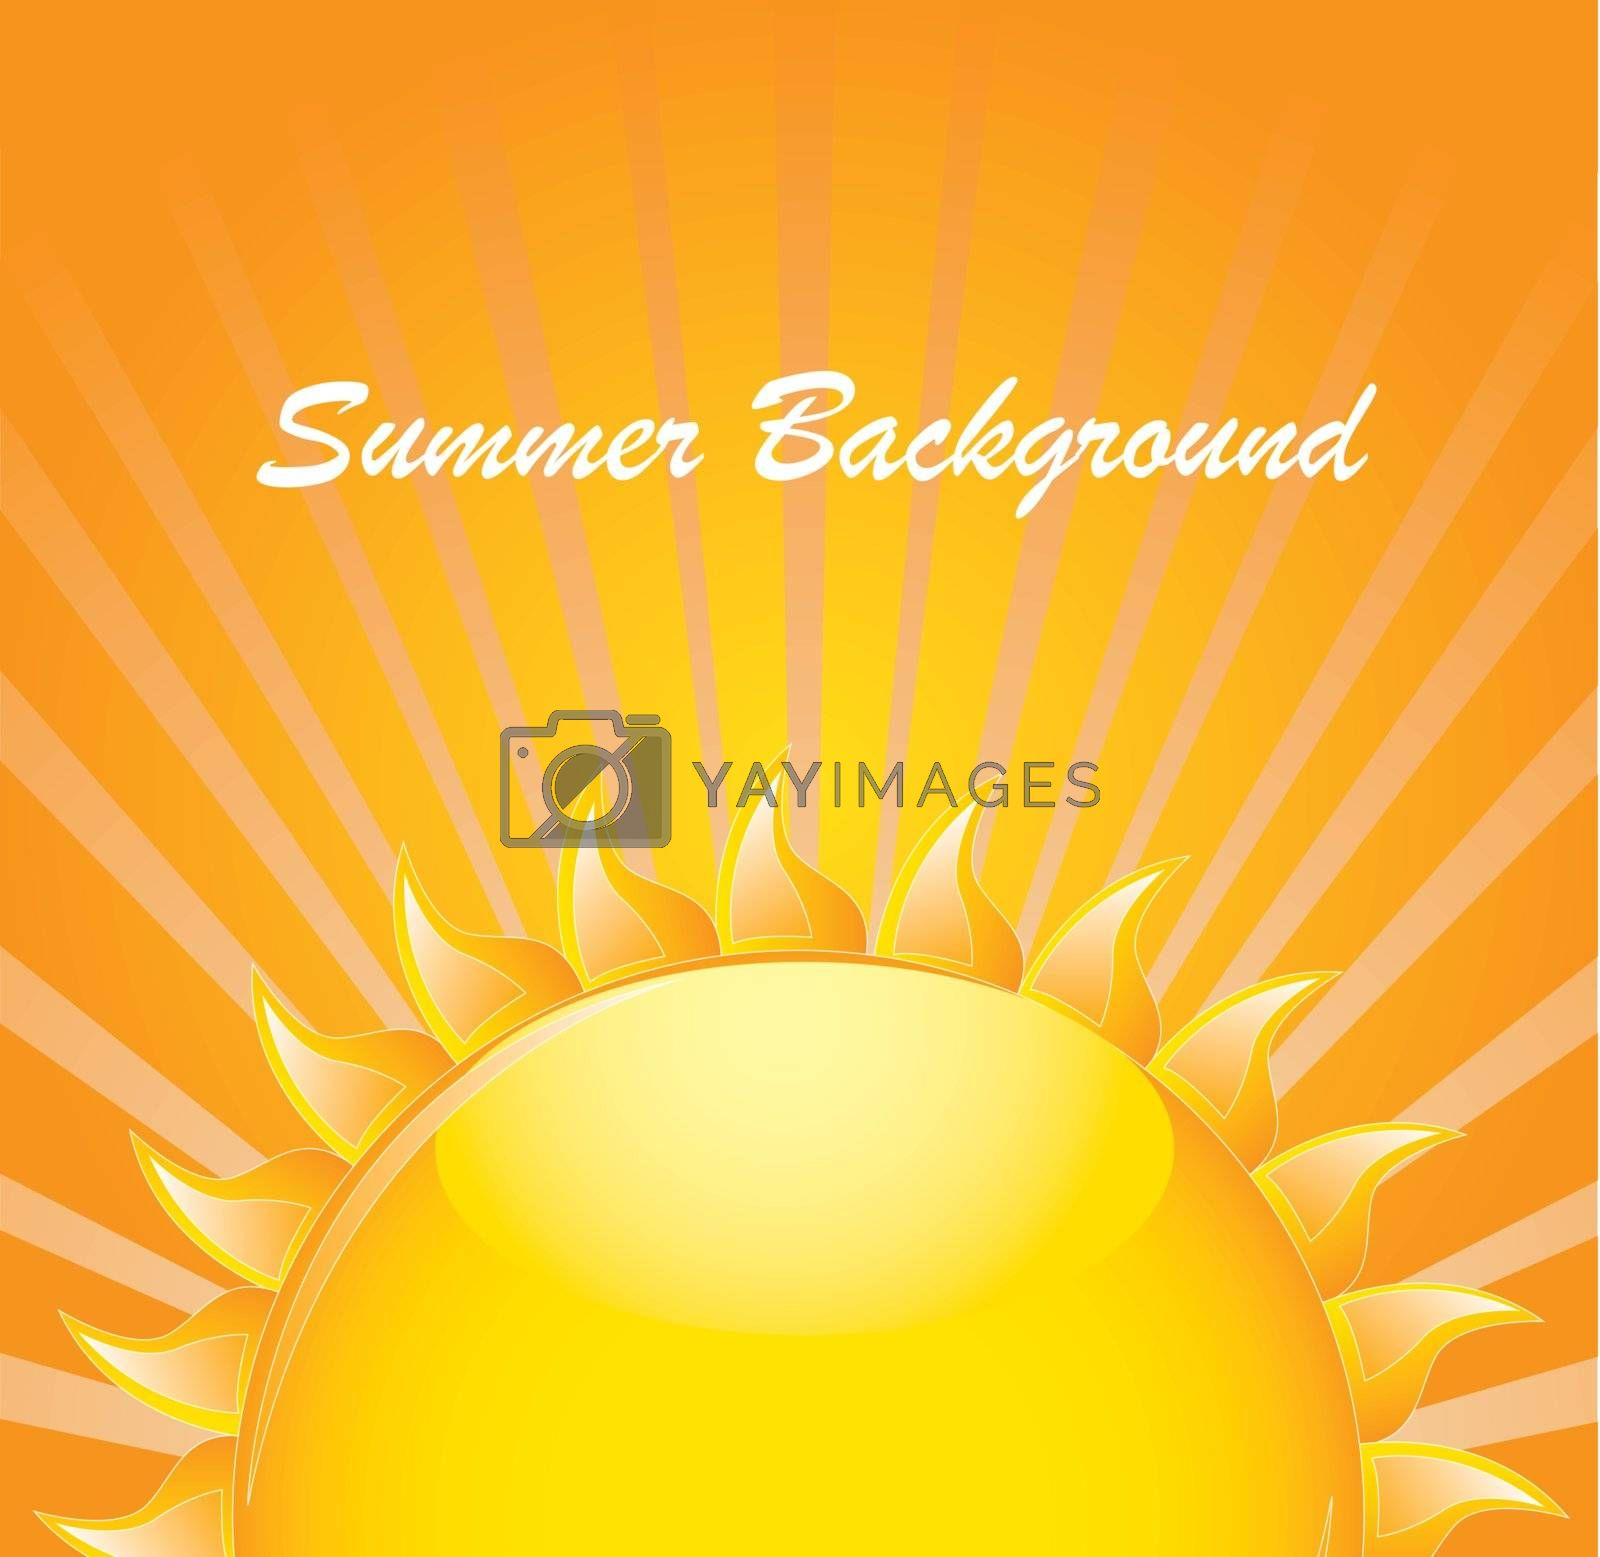 Summer background with big sun over yellow background